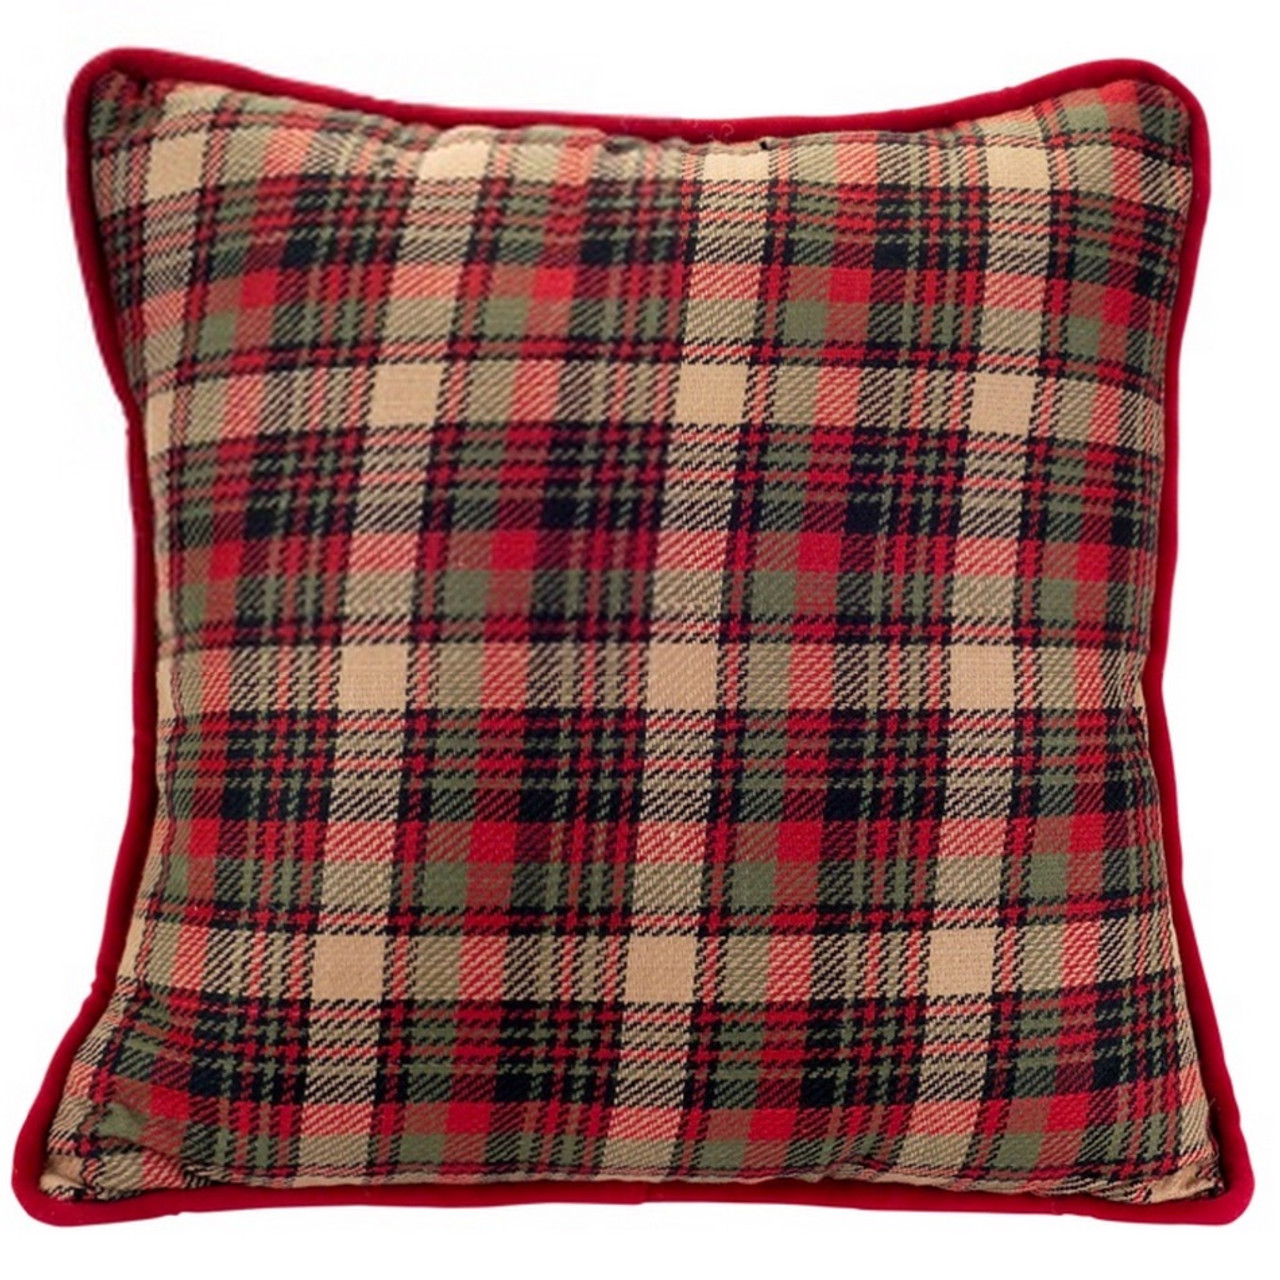 Plaid Christmas Pillows.Set Of 2 Red And Green Plaid Design Throw Pillows 16 31488690